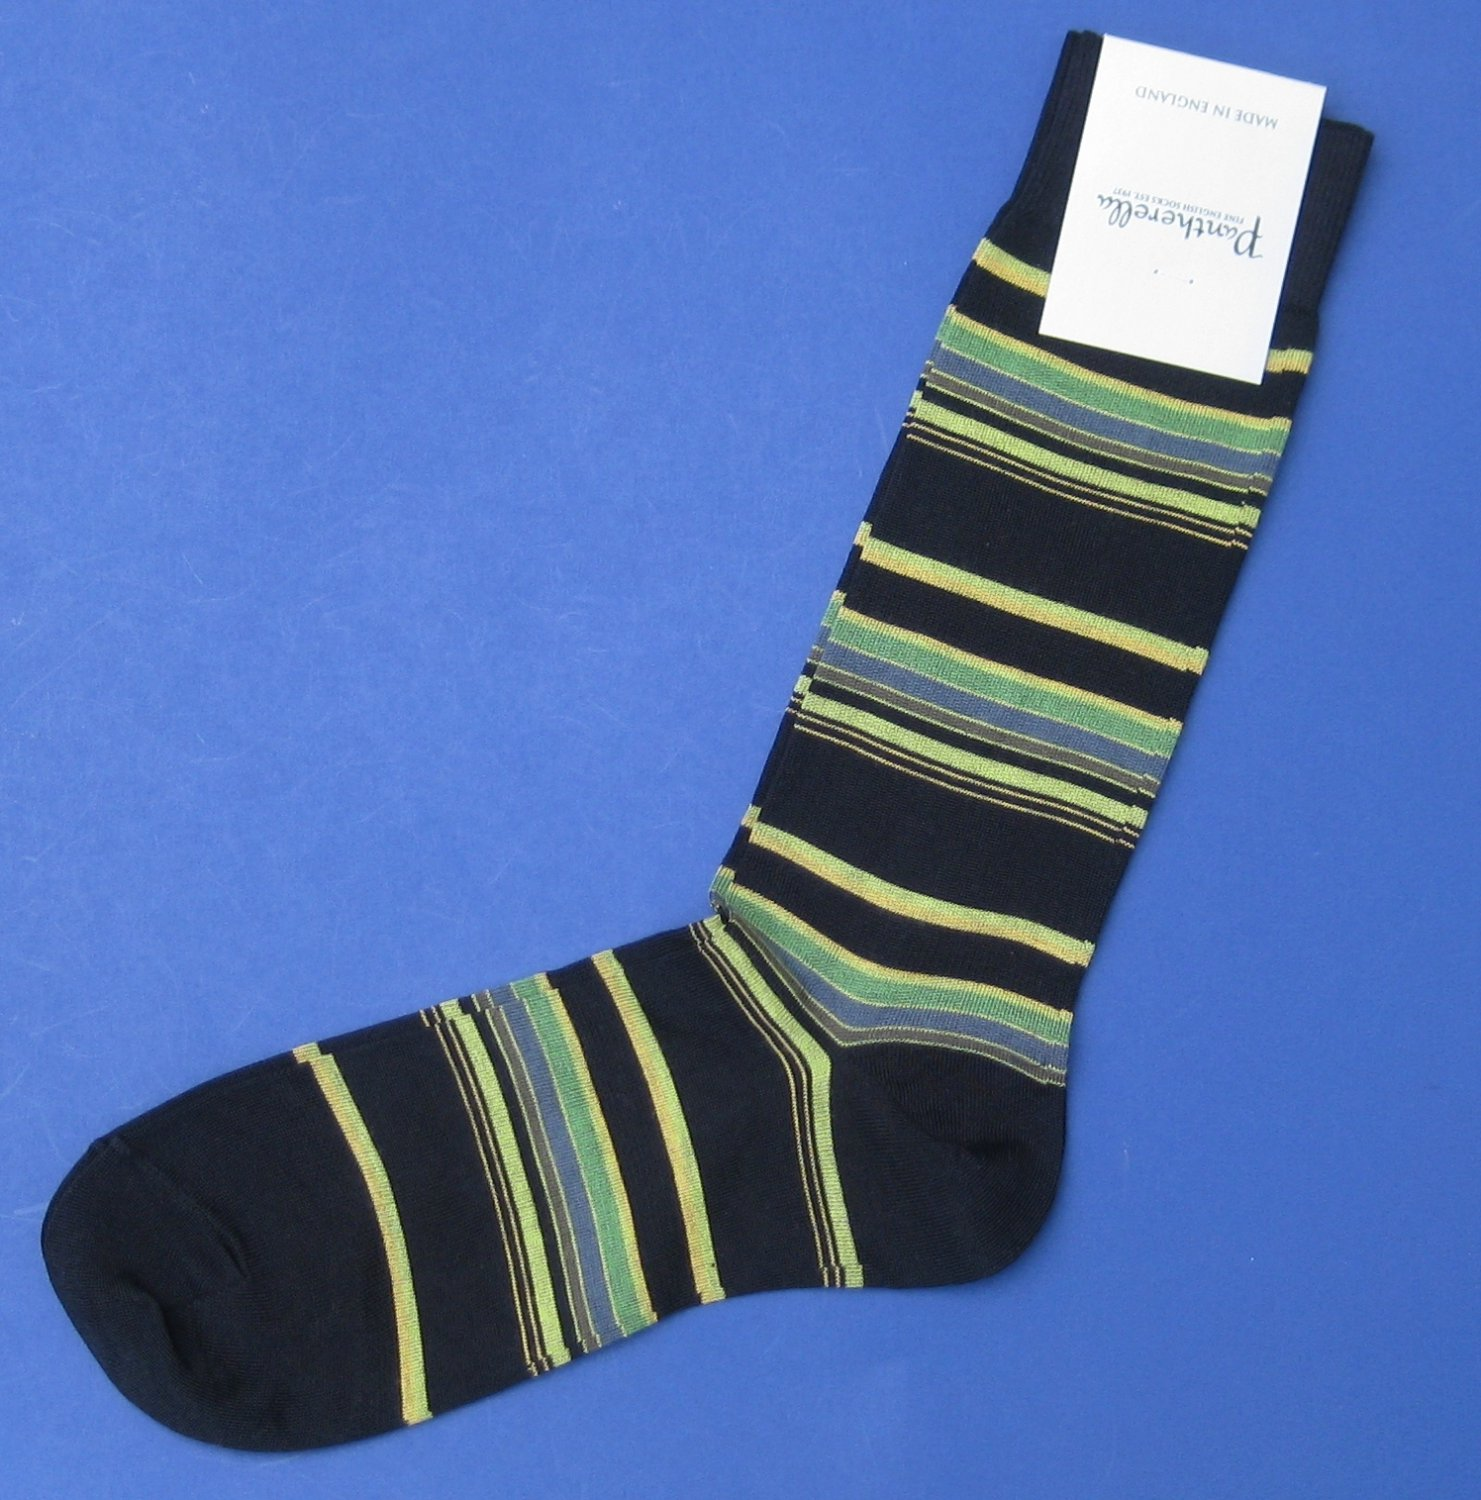 NWT Pantherella Green/Black Stripe Cotton Blend Knit Dress Socks - M